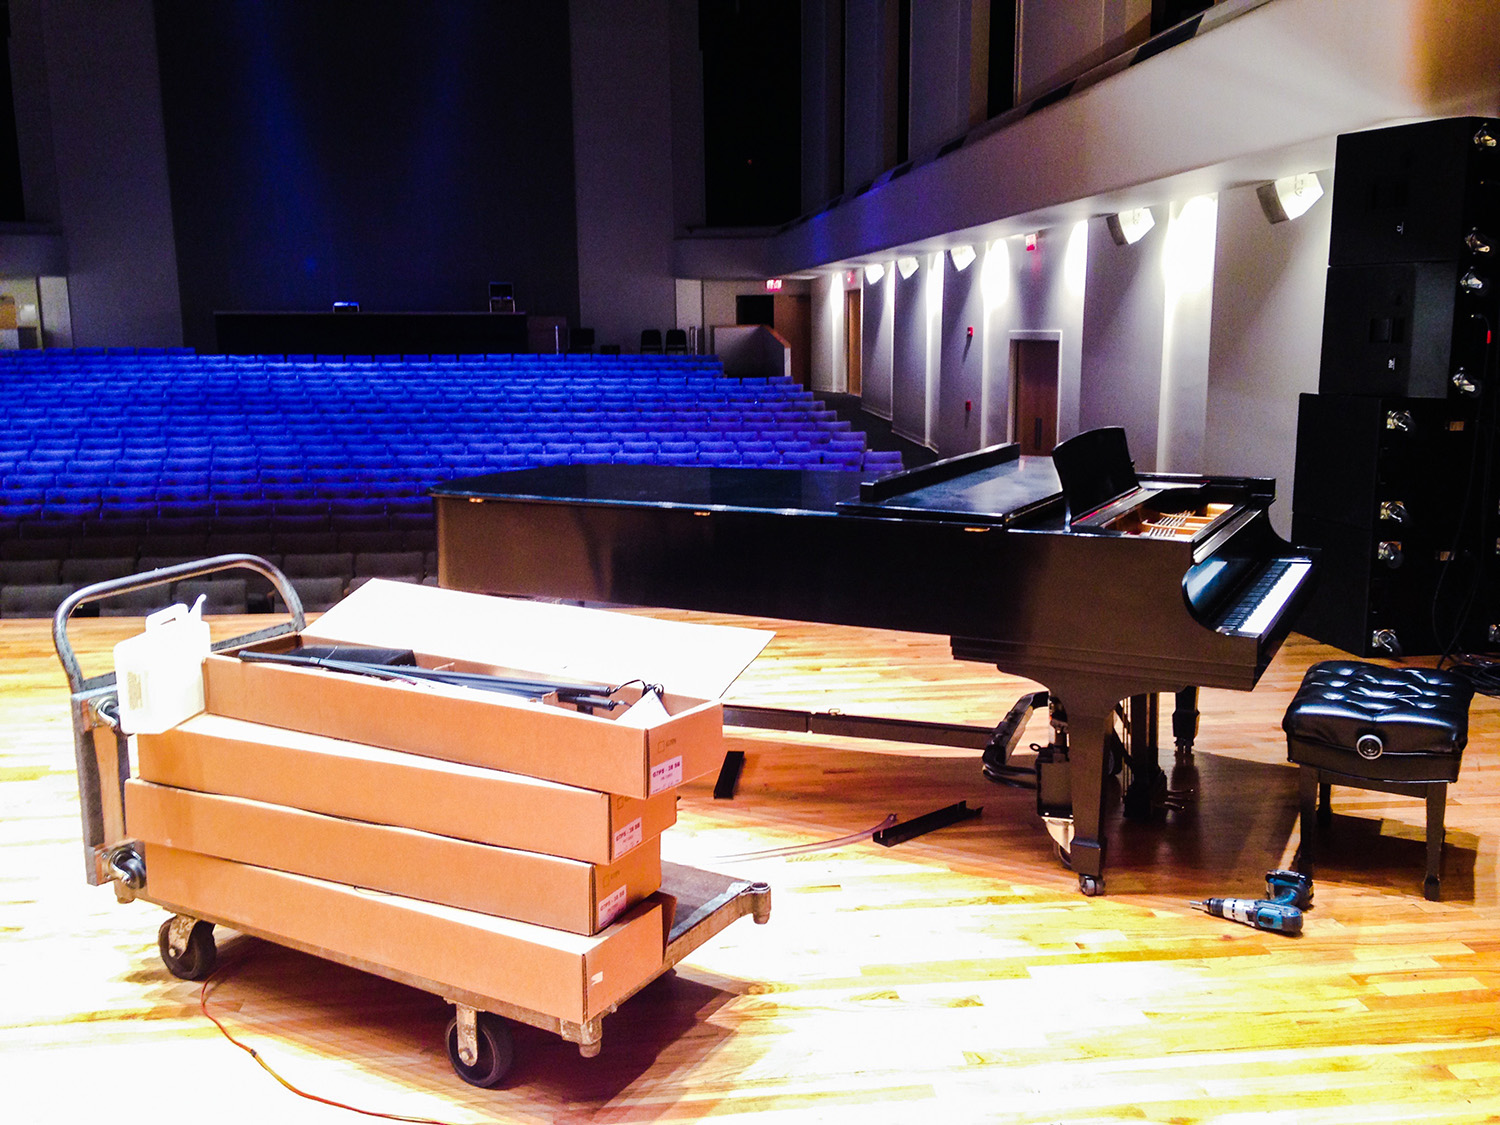 Grand Piano Life Saver Installation in a concert hall